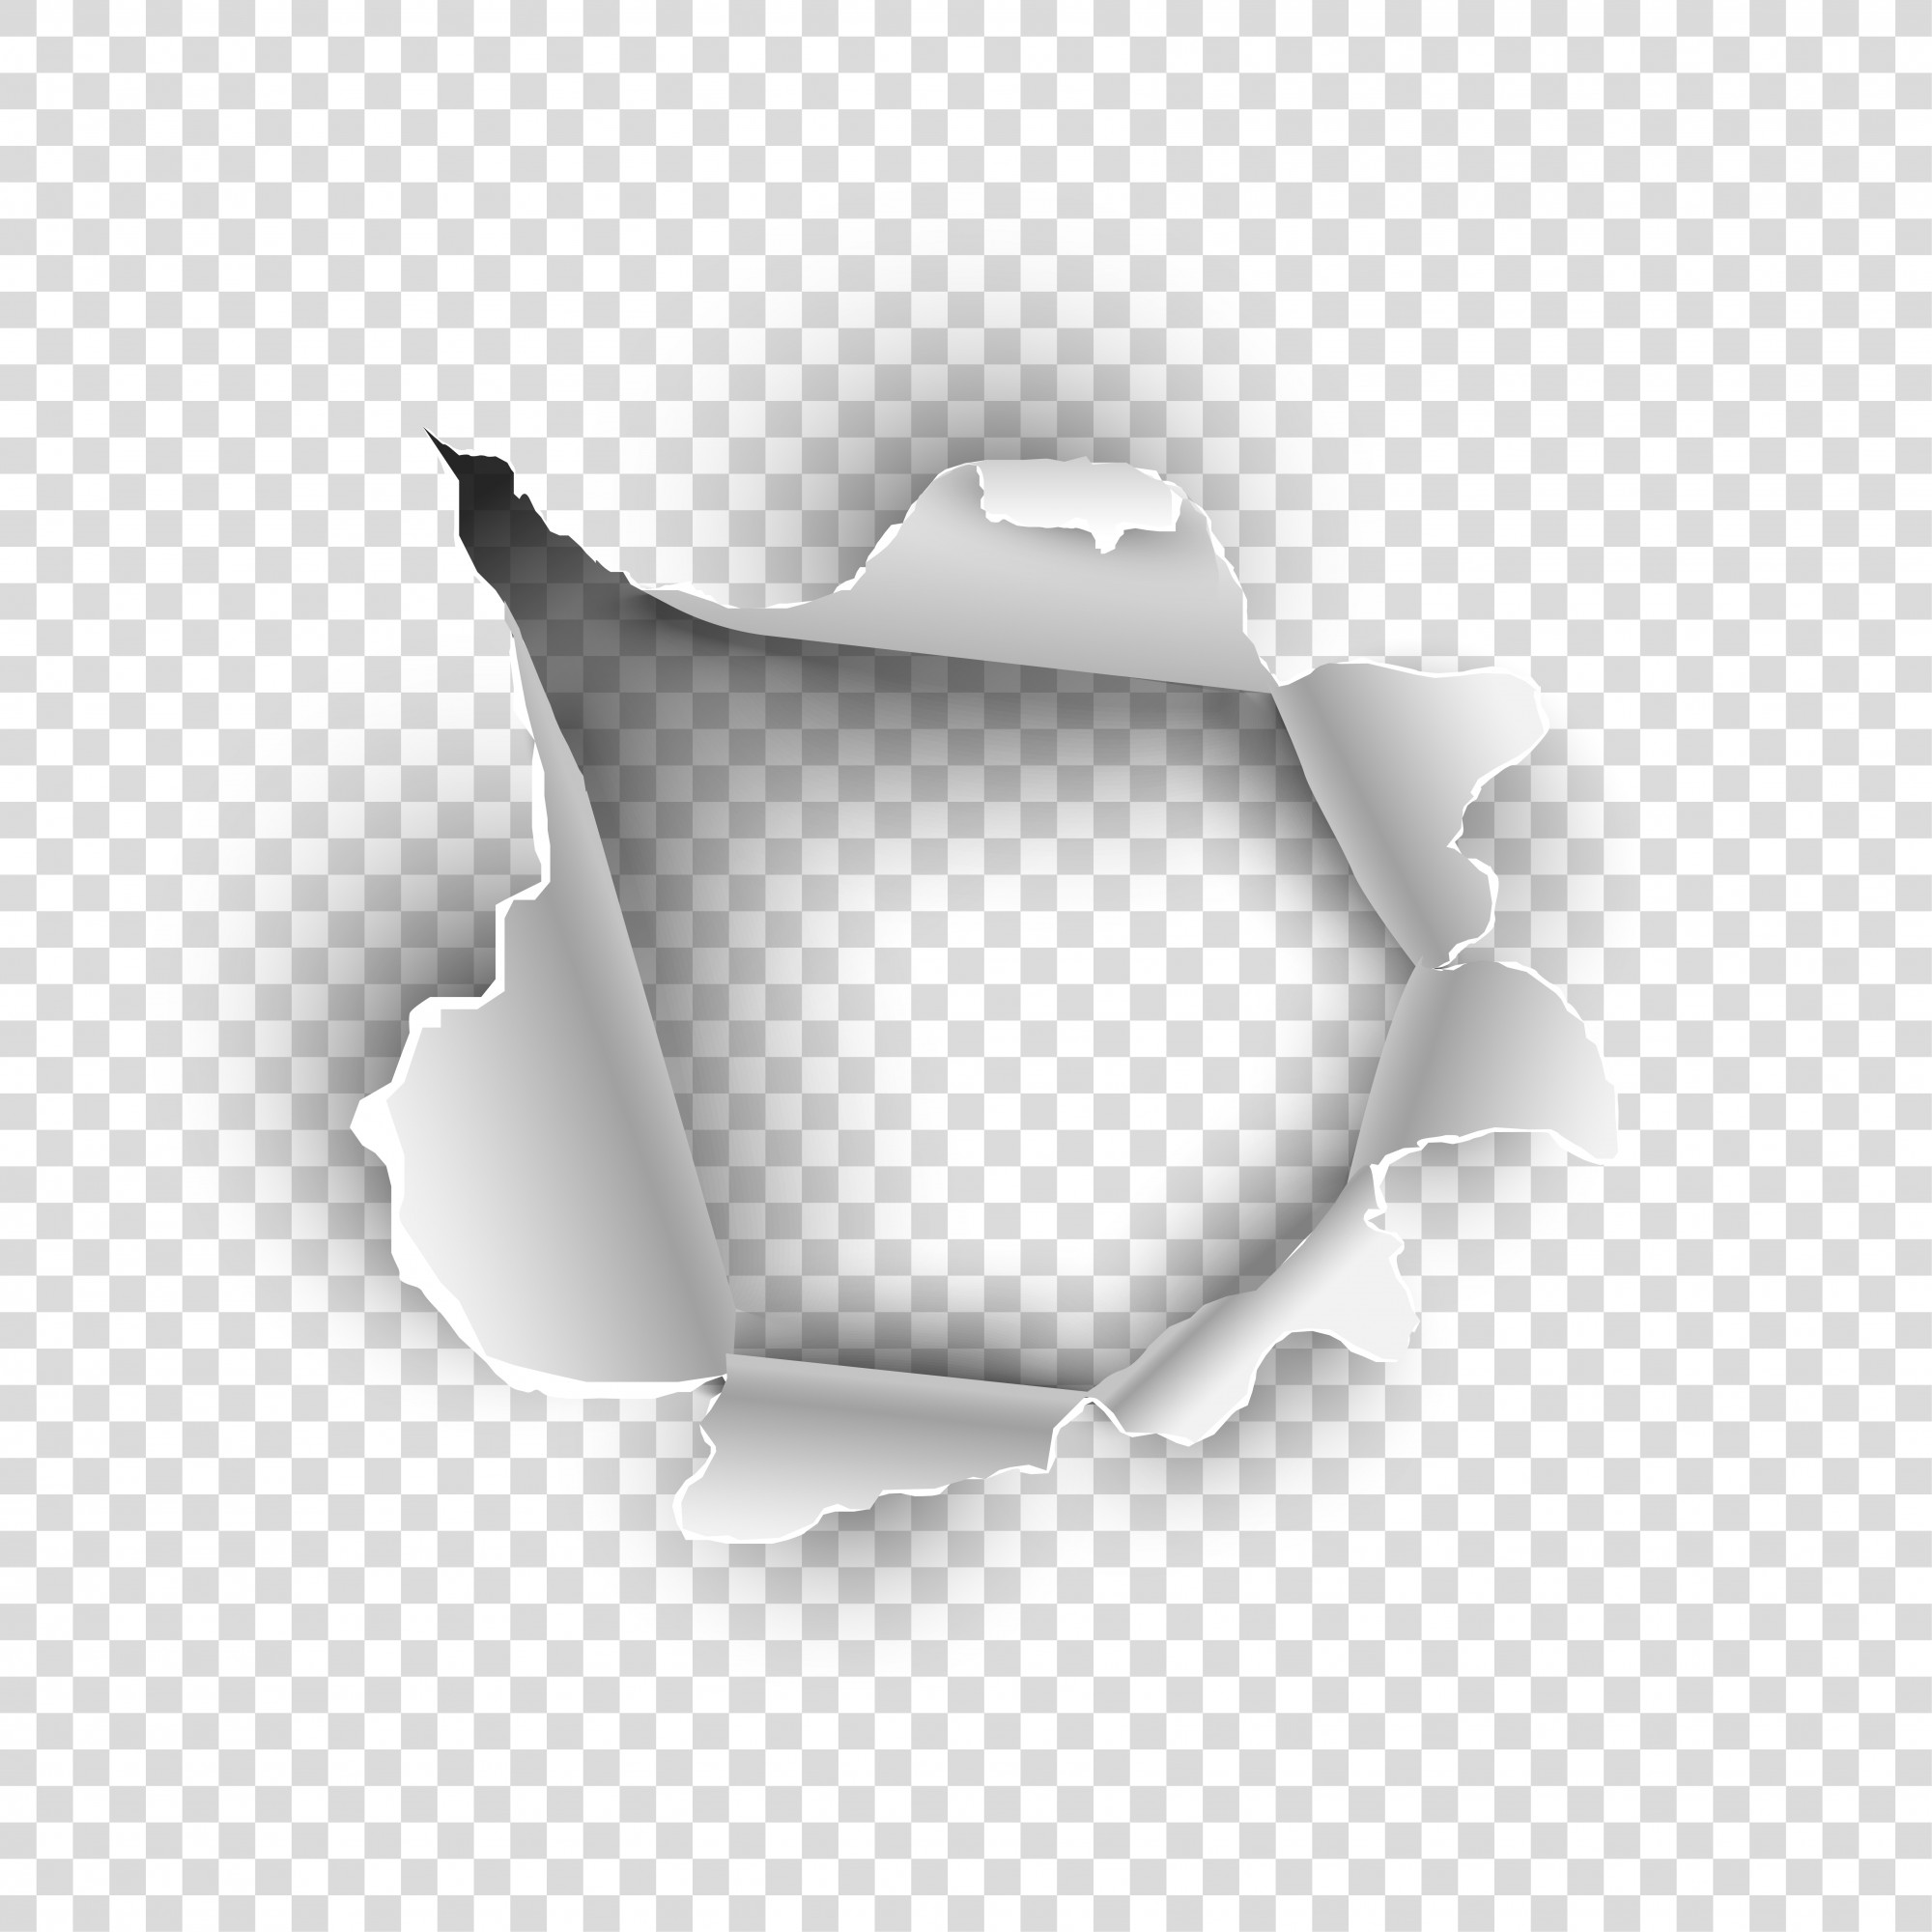 Torn paper or sheet texture on transparent background.